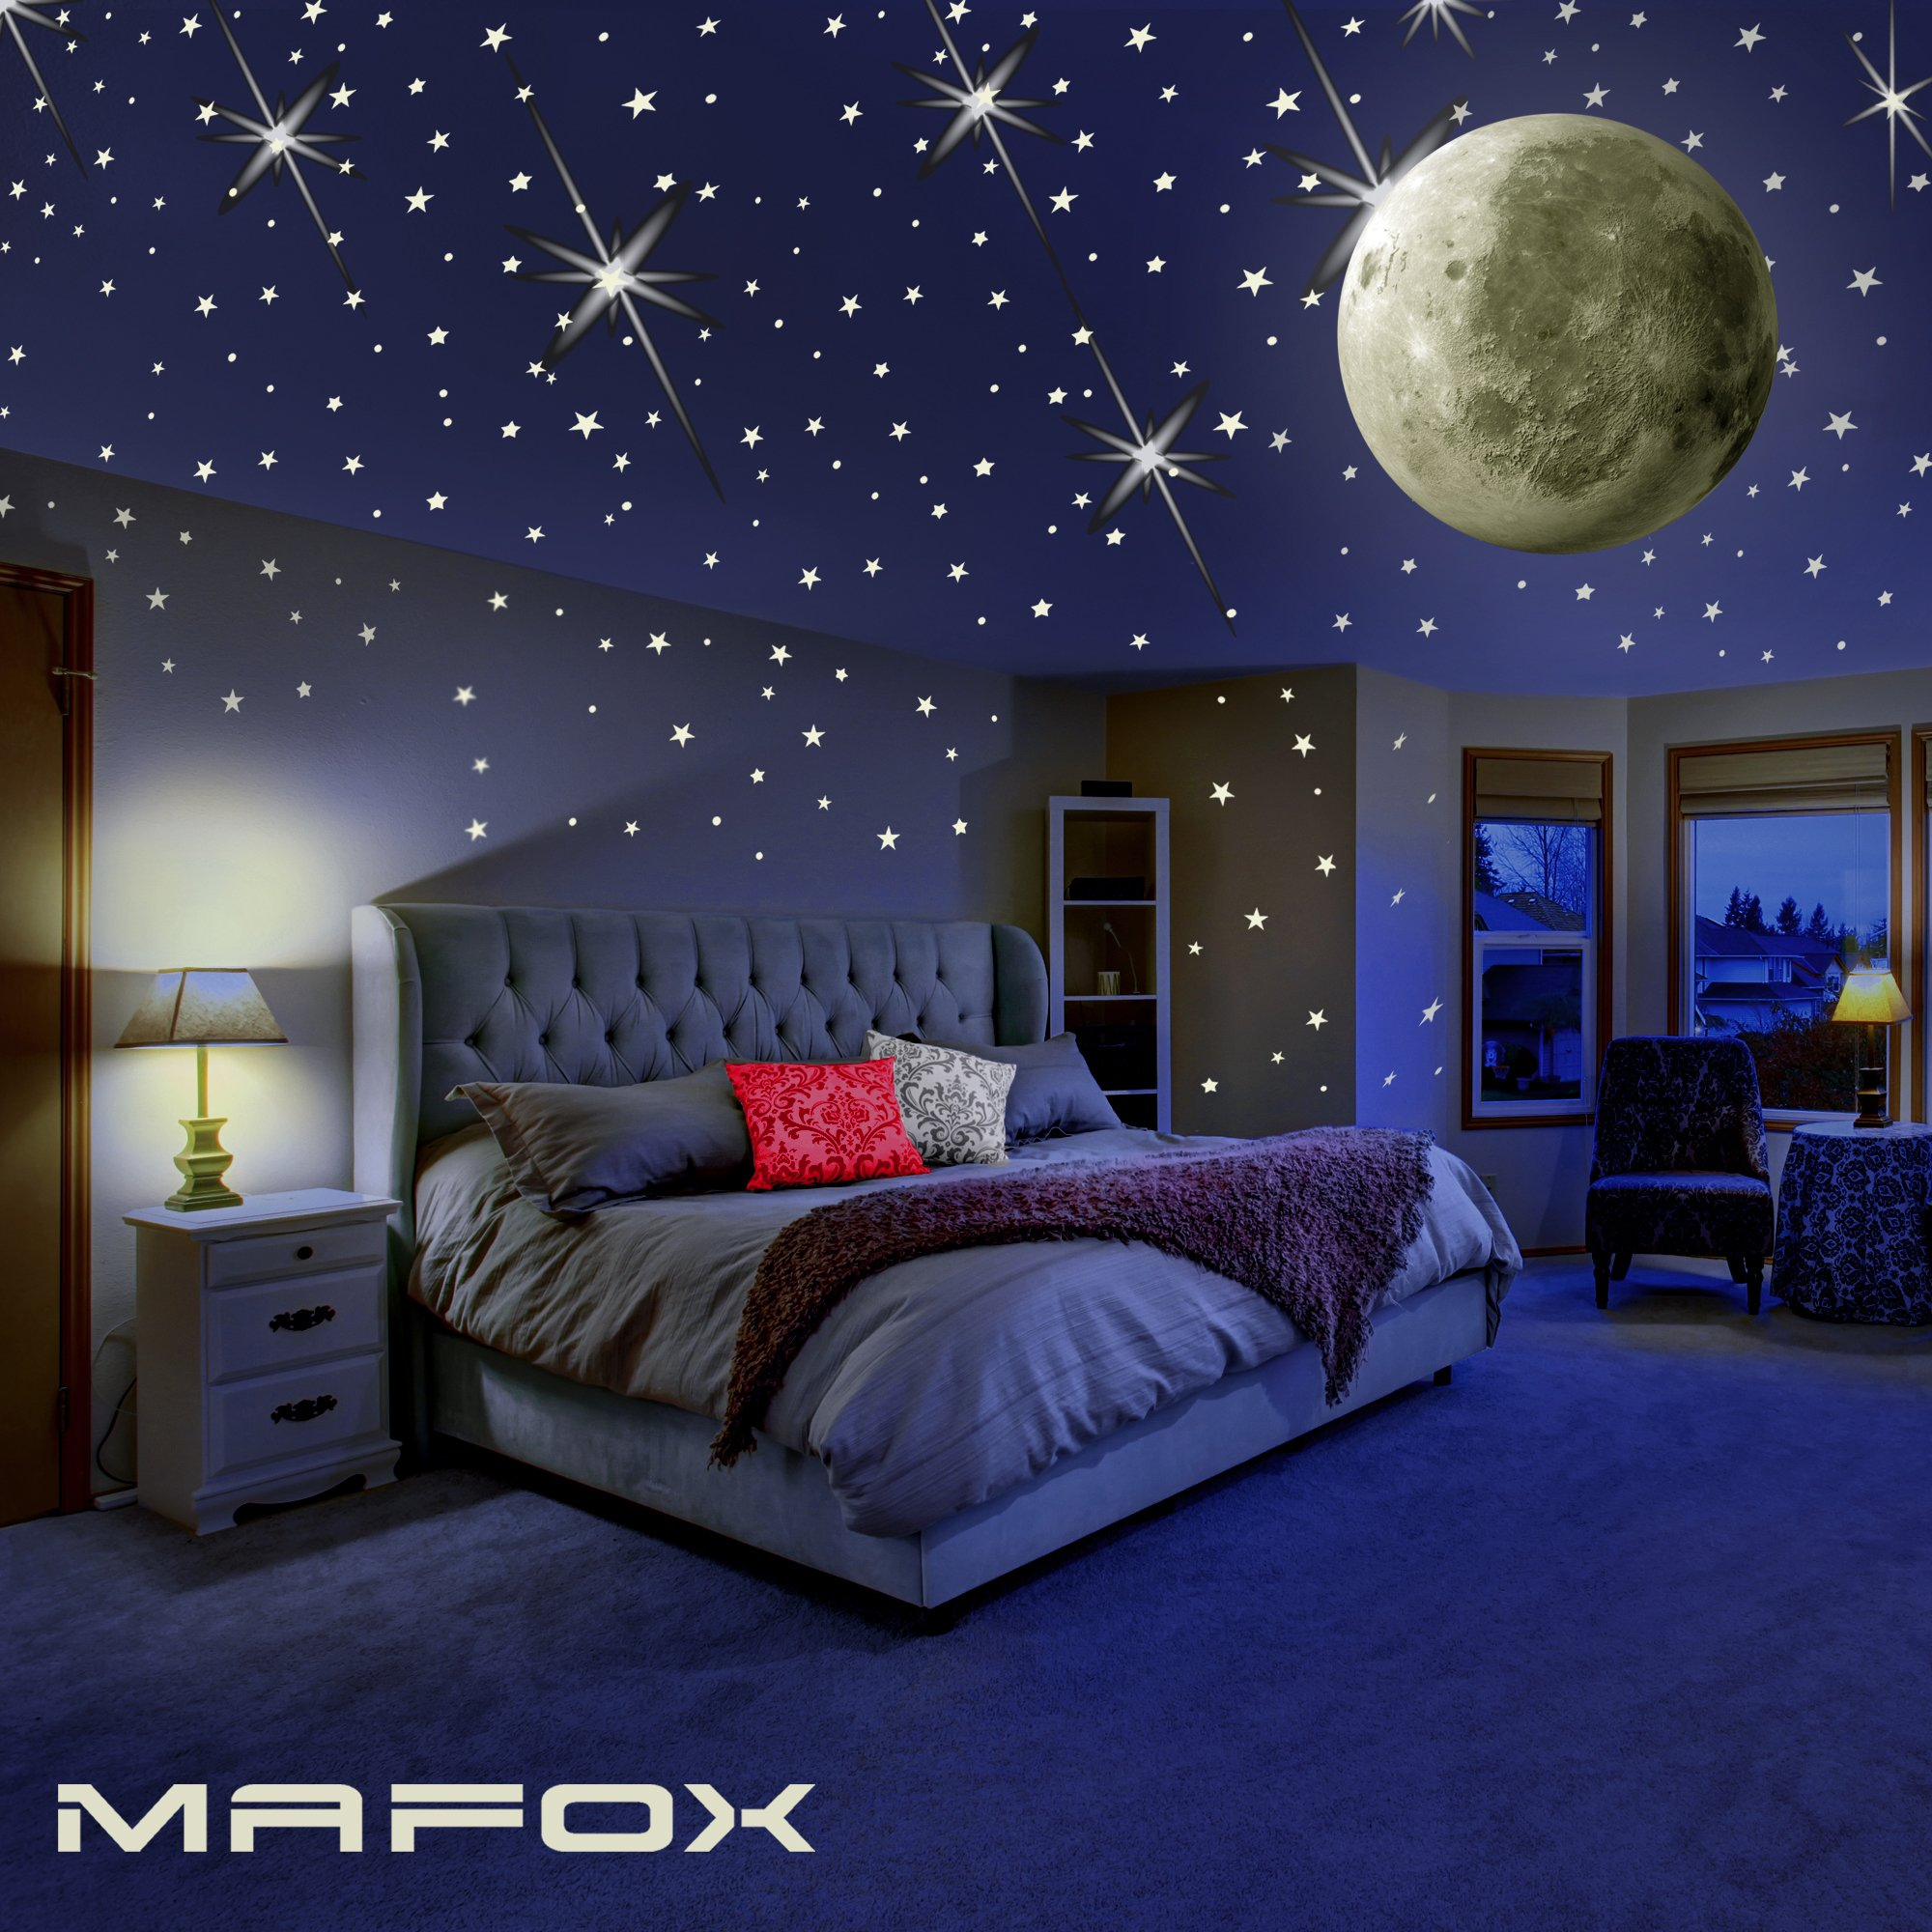 Mafox glow in the dark wall or ceiling stars with moon for Luminous bedroom